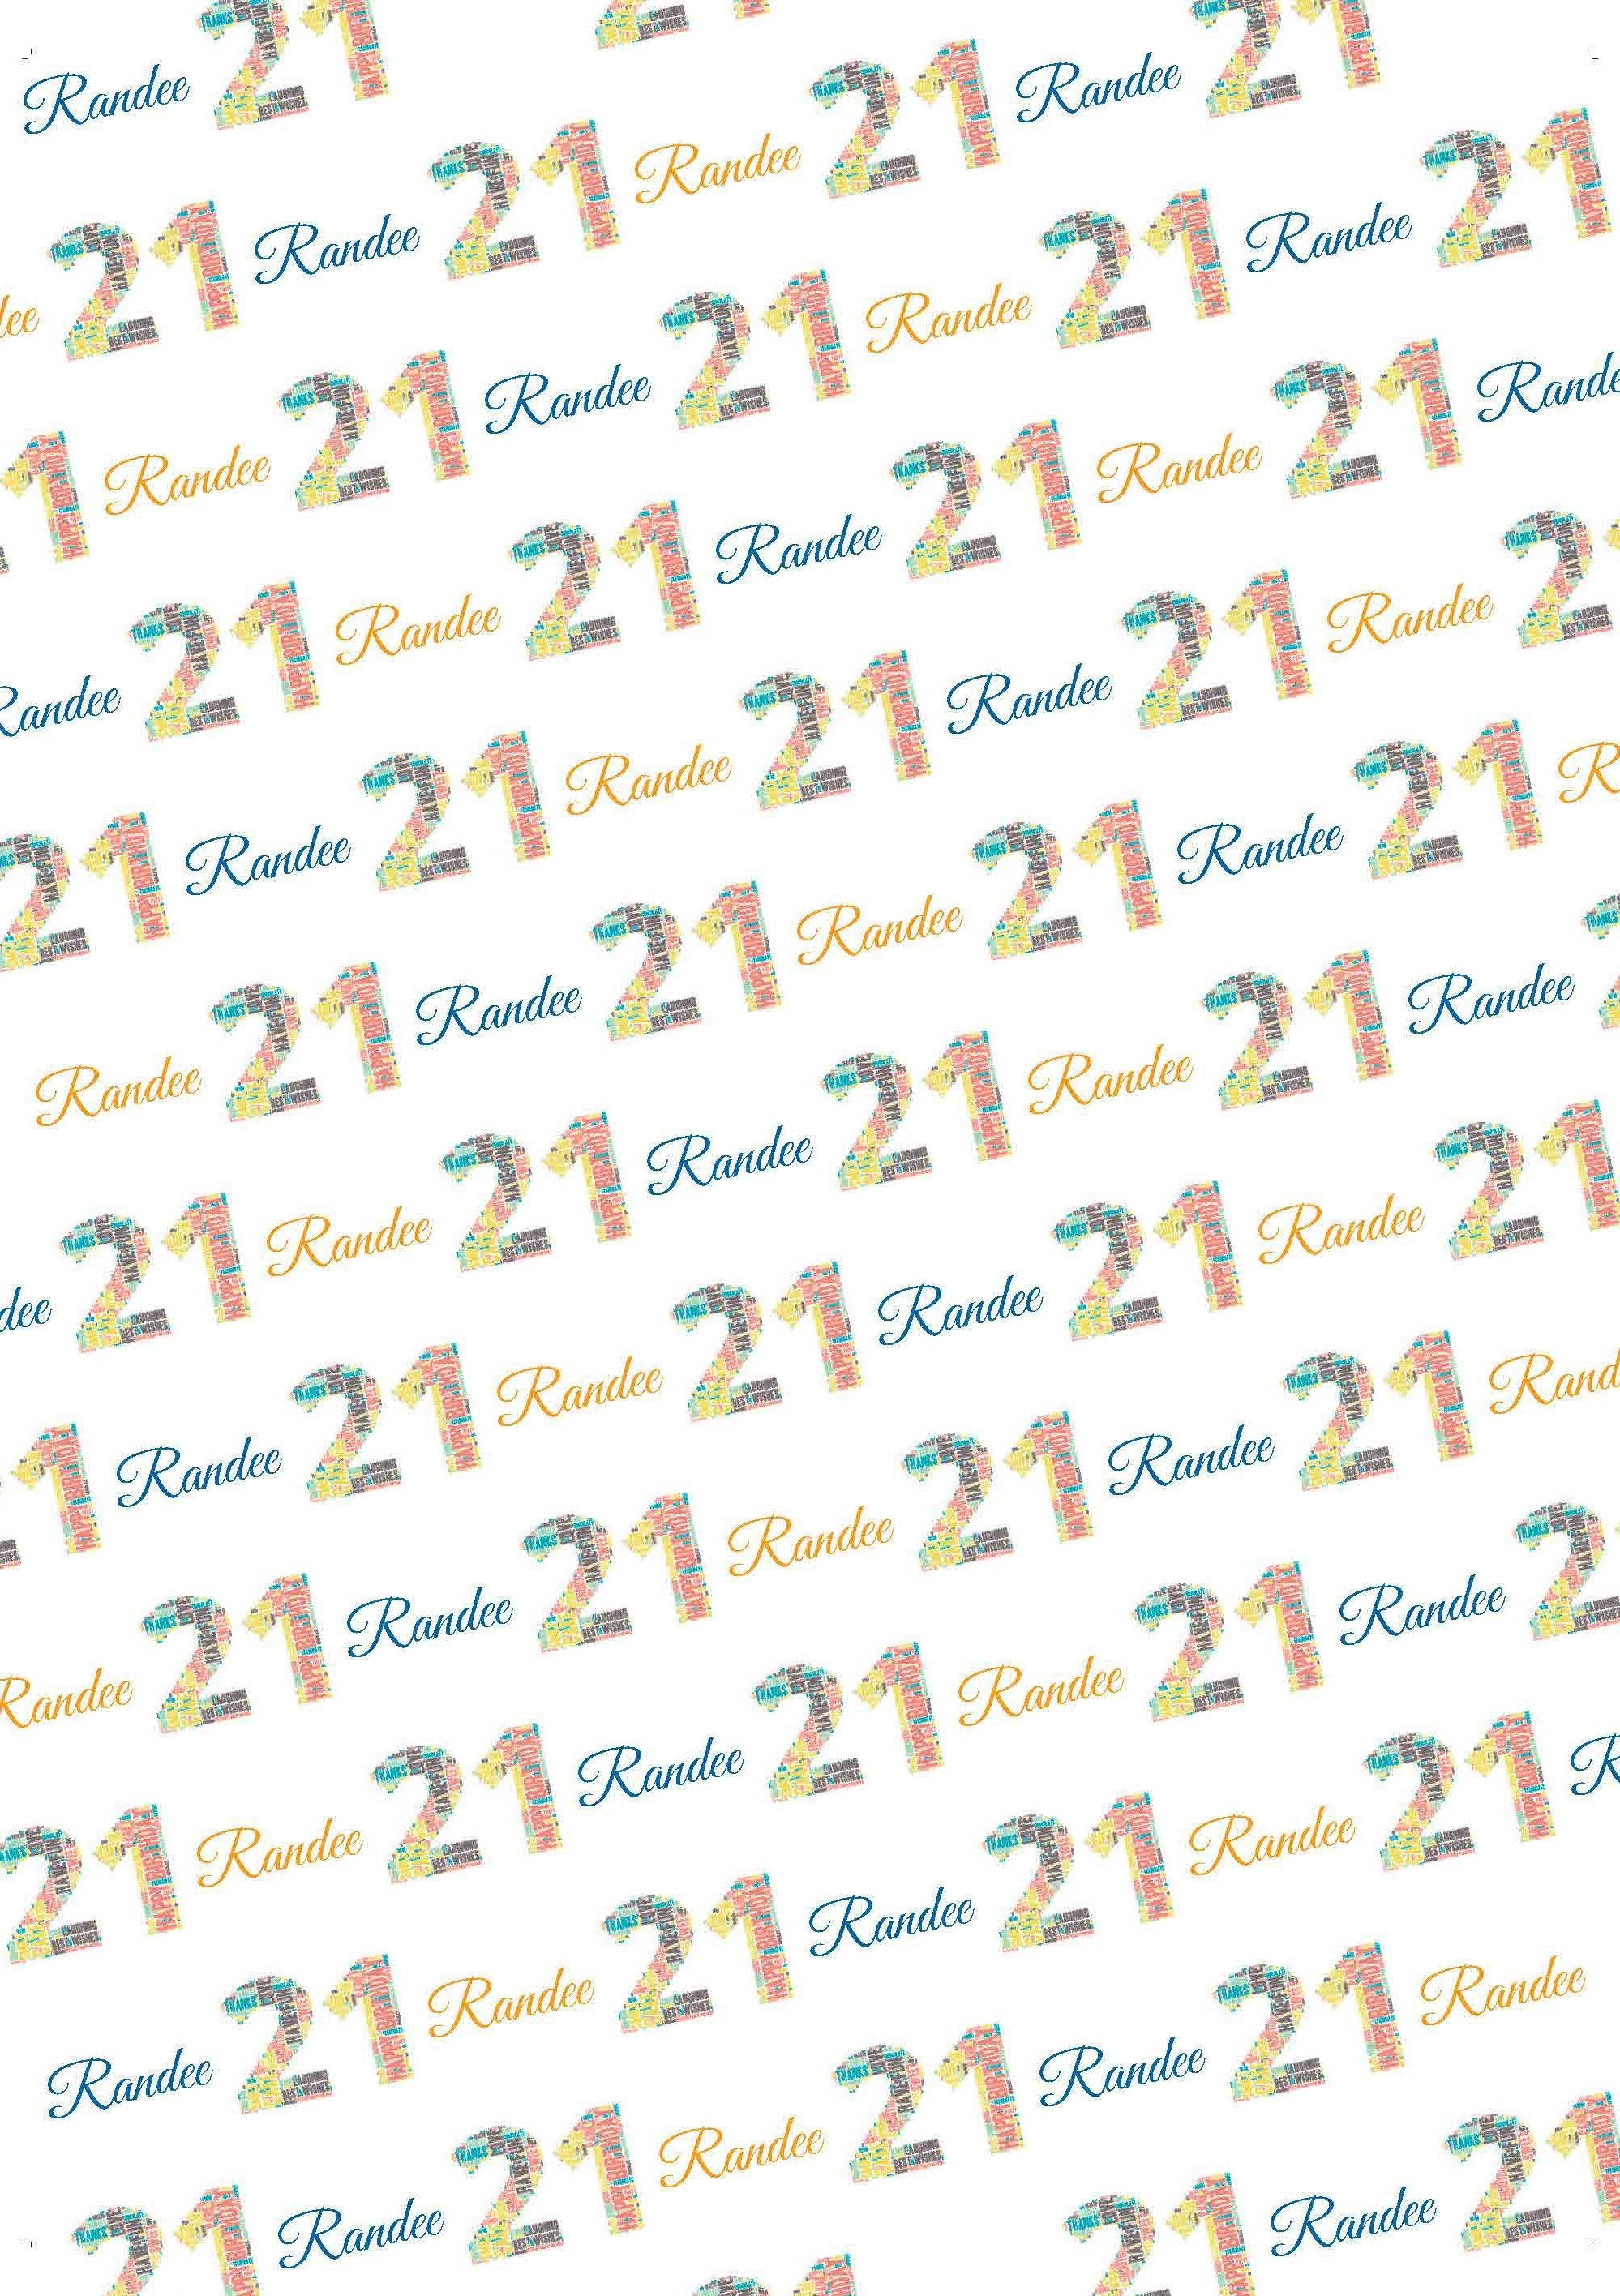 21st Birthday Words Personalized Gift Wrap